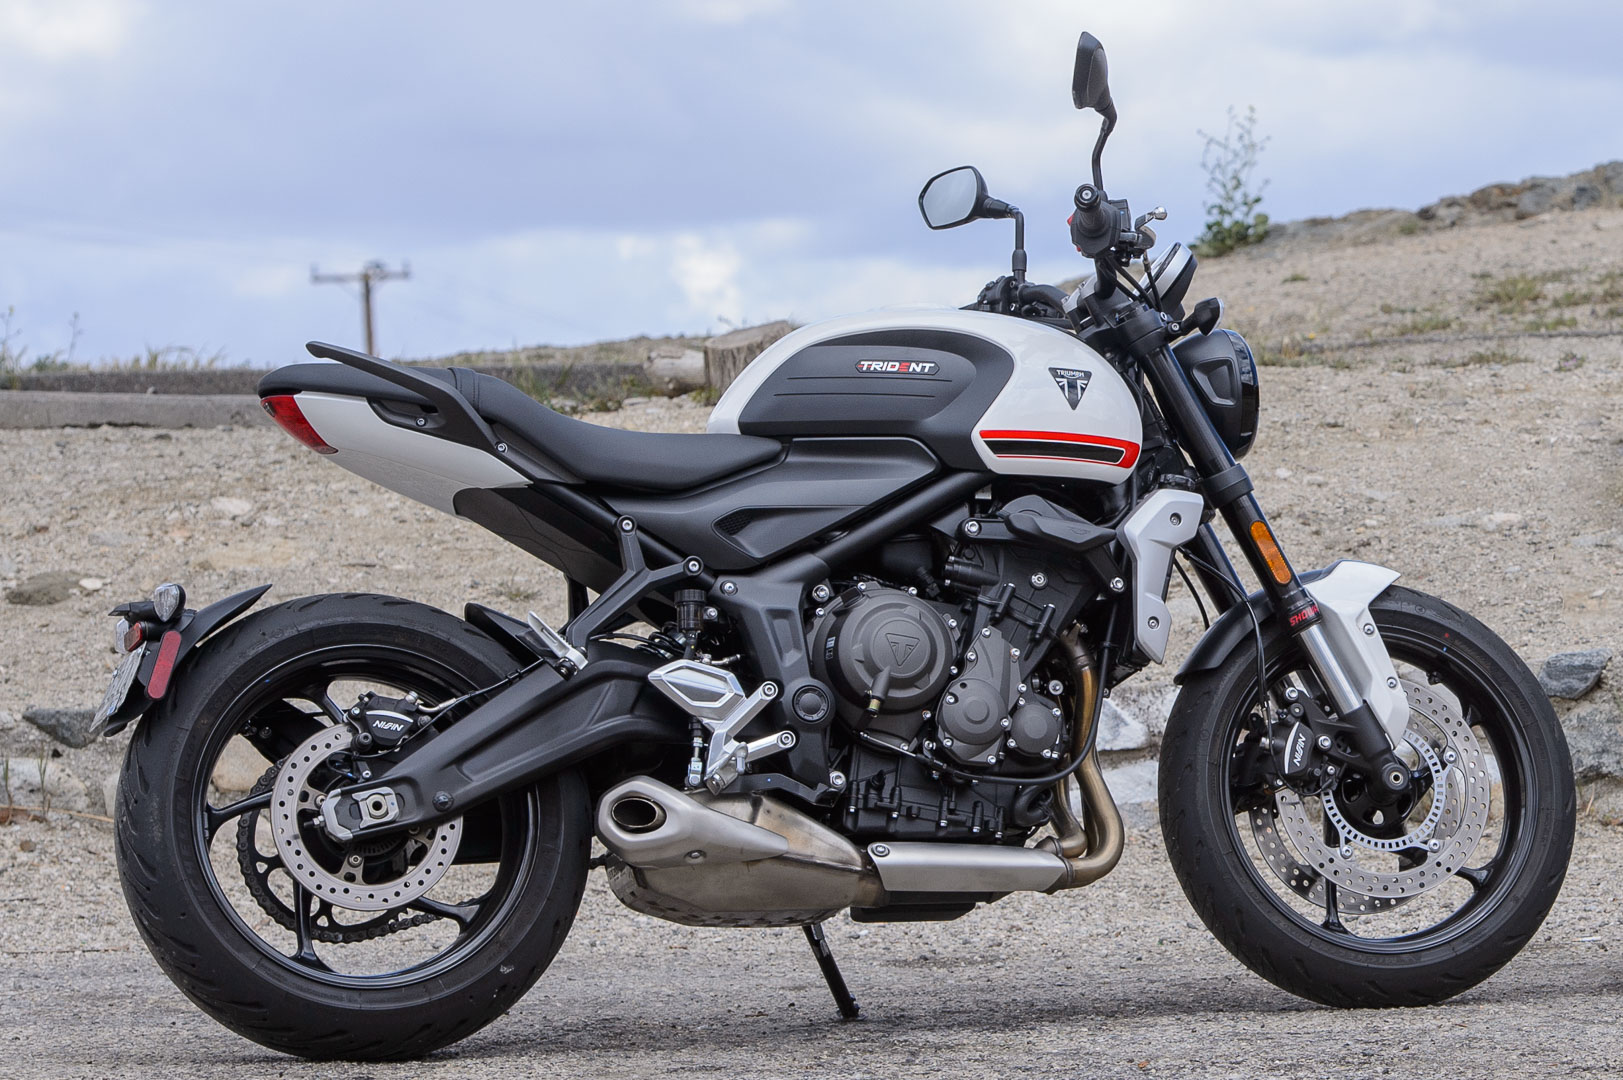 2021 Triumph Trident 660 Review: Specs and Photos